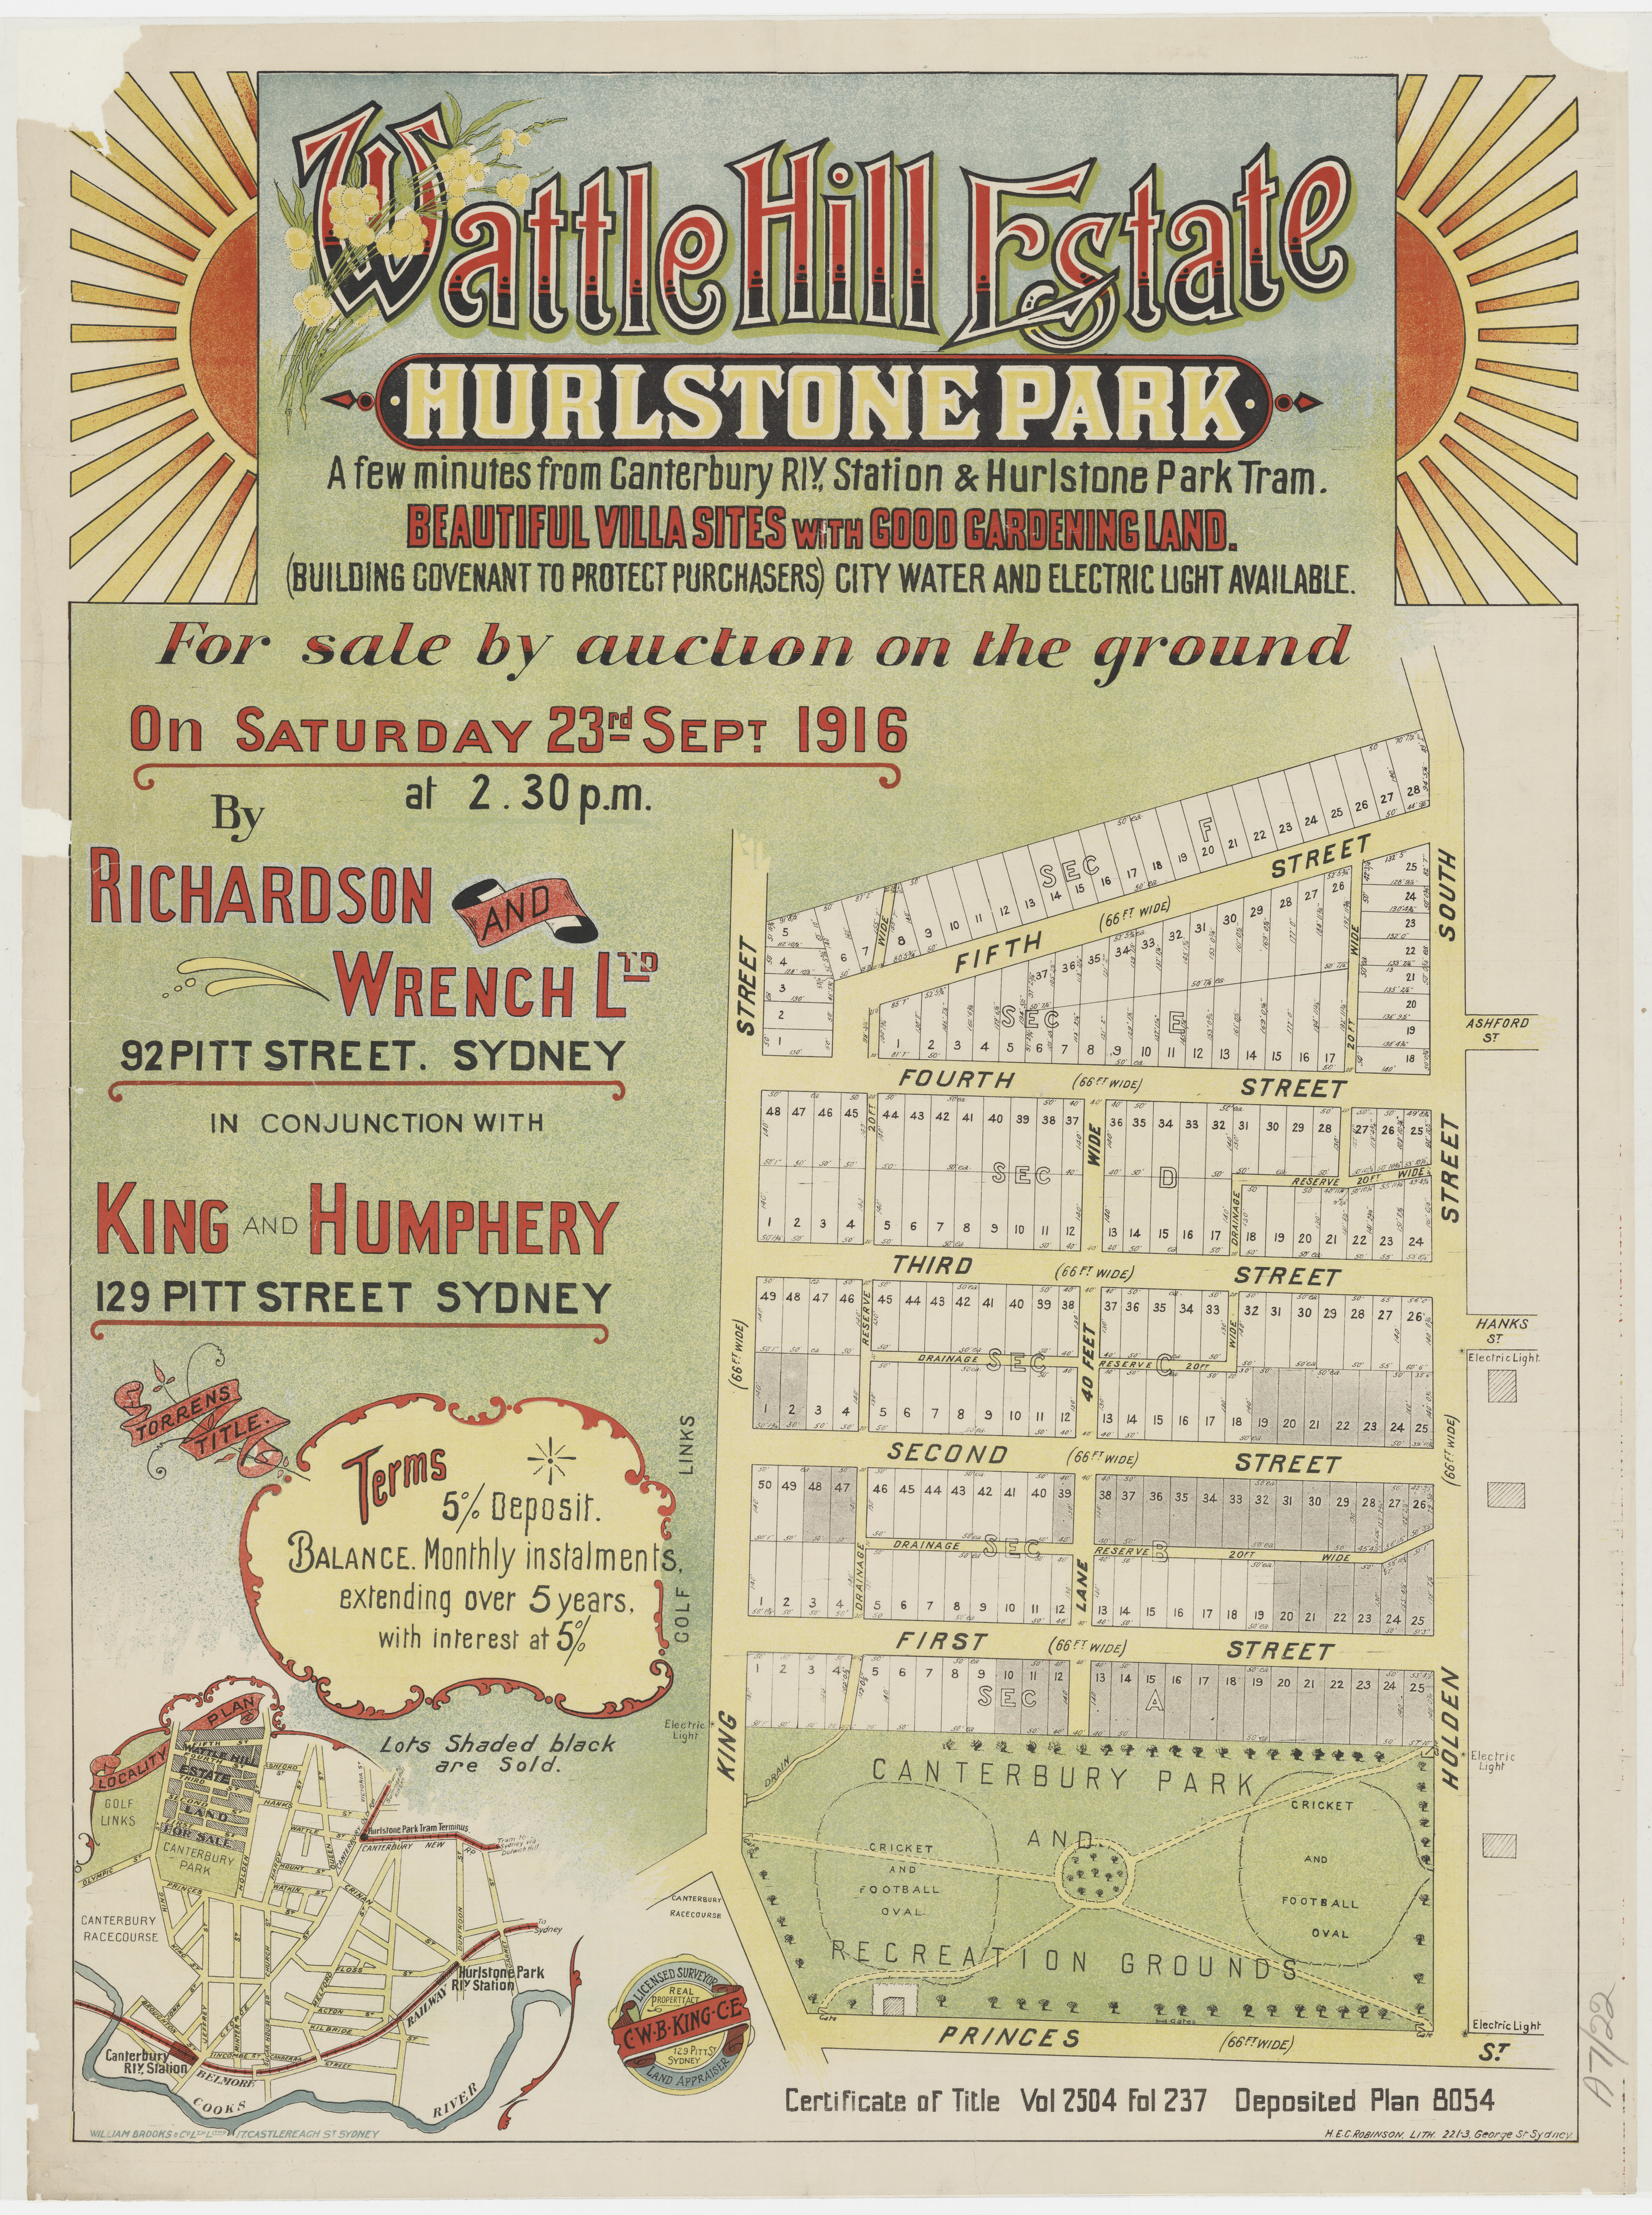 Subdivision Plan: 022 - Z/SP/A7/22 - Wattle Hill Estate Hurlstone Park  - First St, Second St, Third St, Fourth St, Fifth St, 1916